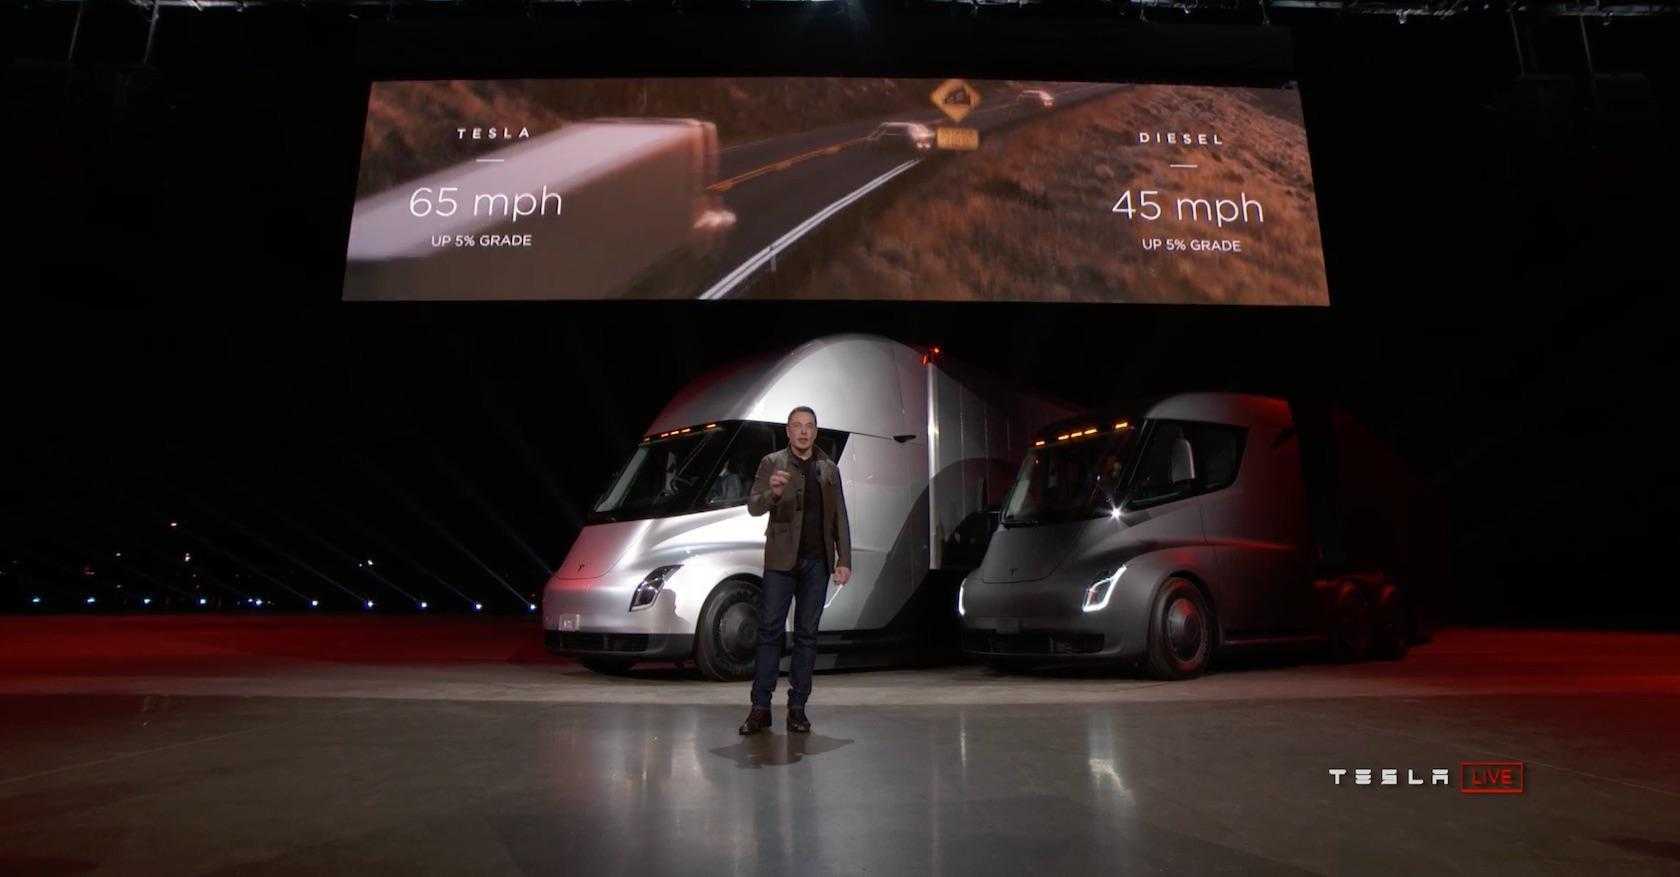 Truck Ever Tesla Said Today Four Independent Motors Provide Maximum And Acceleration Require The Lower Sic Energy Cost Per Mile